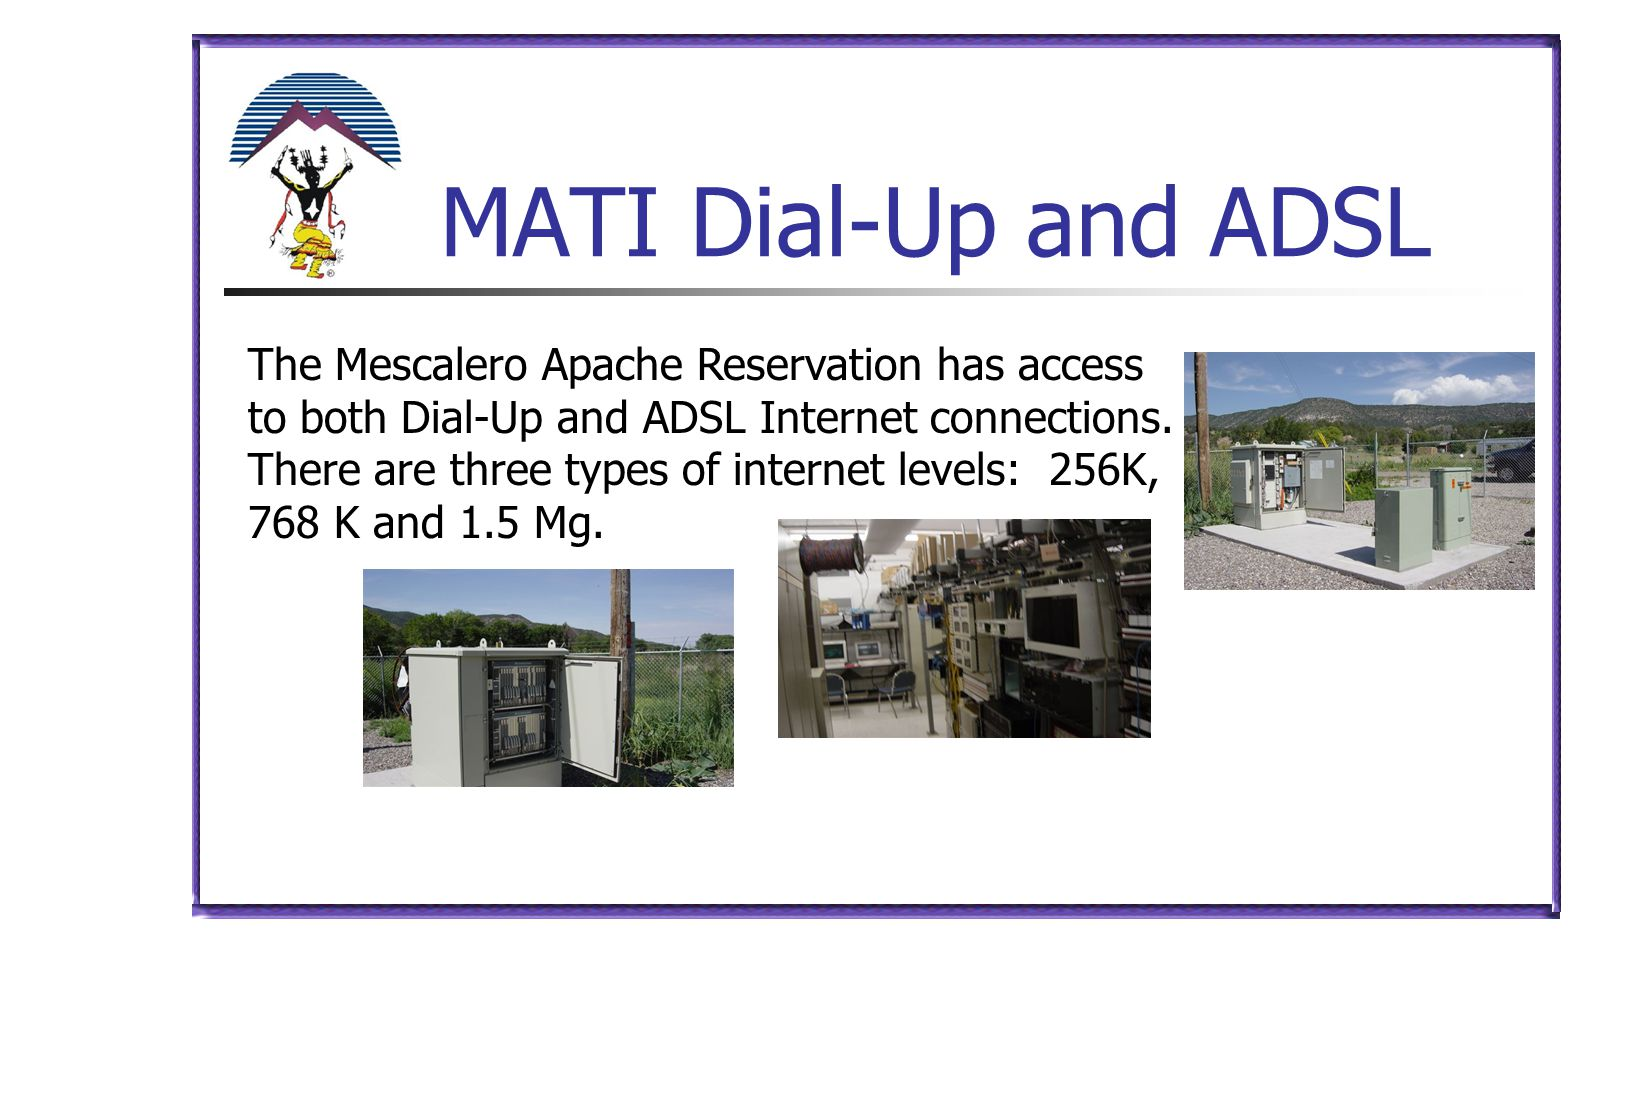 MATI Dial-Up and ADSL The Mescalero Apache Reservation has access to both Dial-Up and ADSL Internet connections. There are three types of internet lev